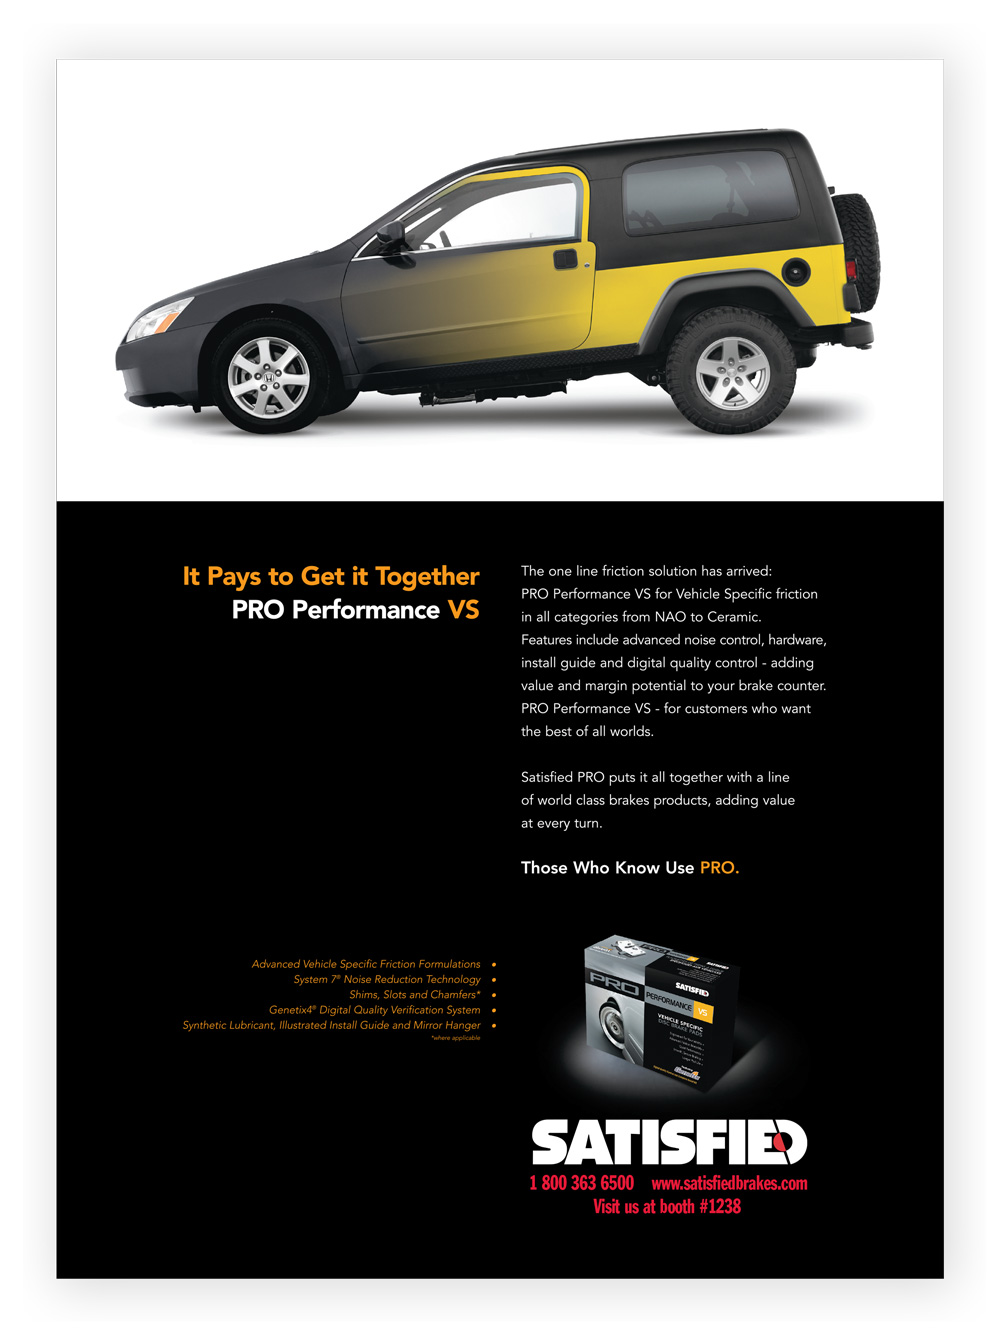 pro-fleet-performance-poster.jpg